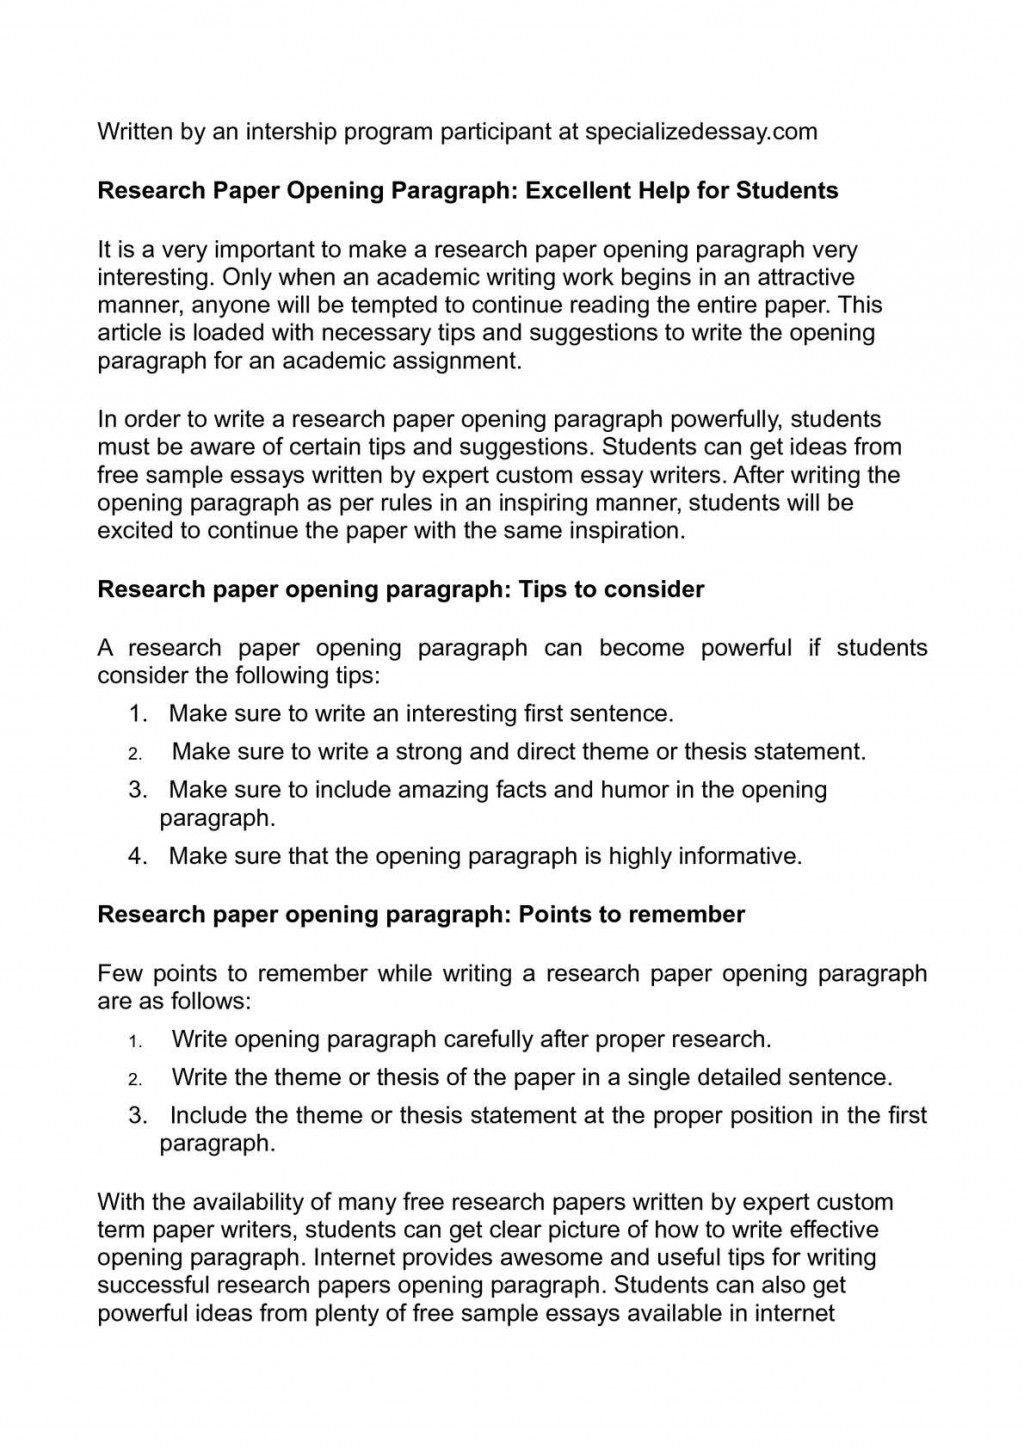 024 Get Help With Research Paper Stunning Writing A Large